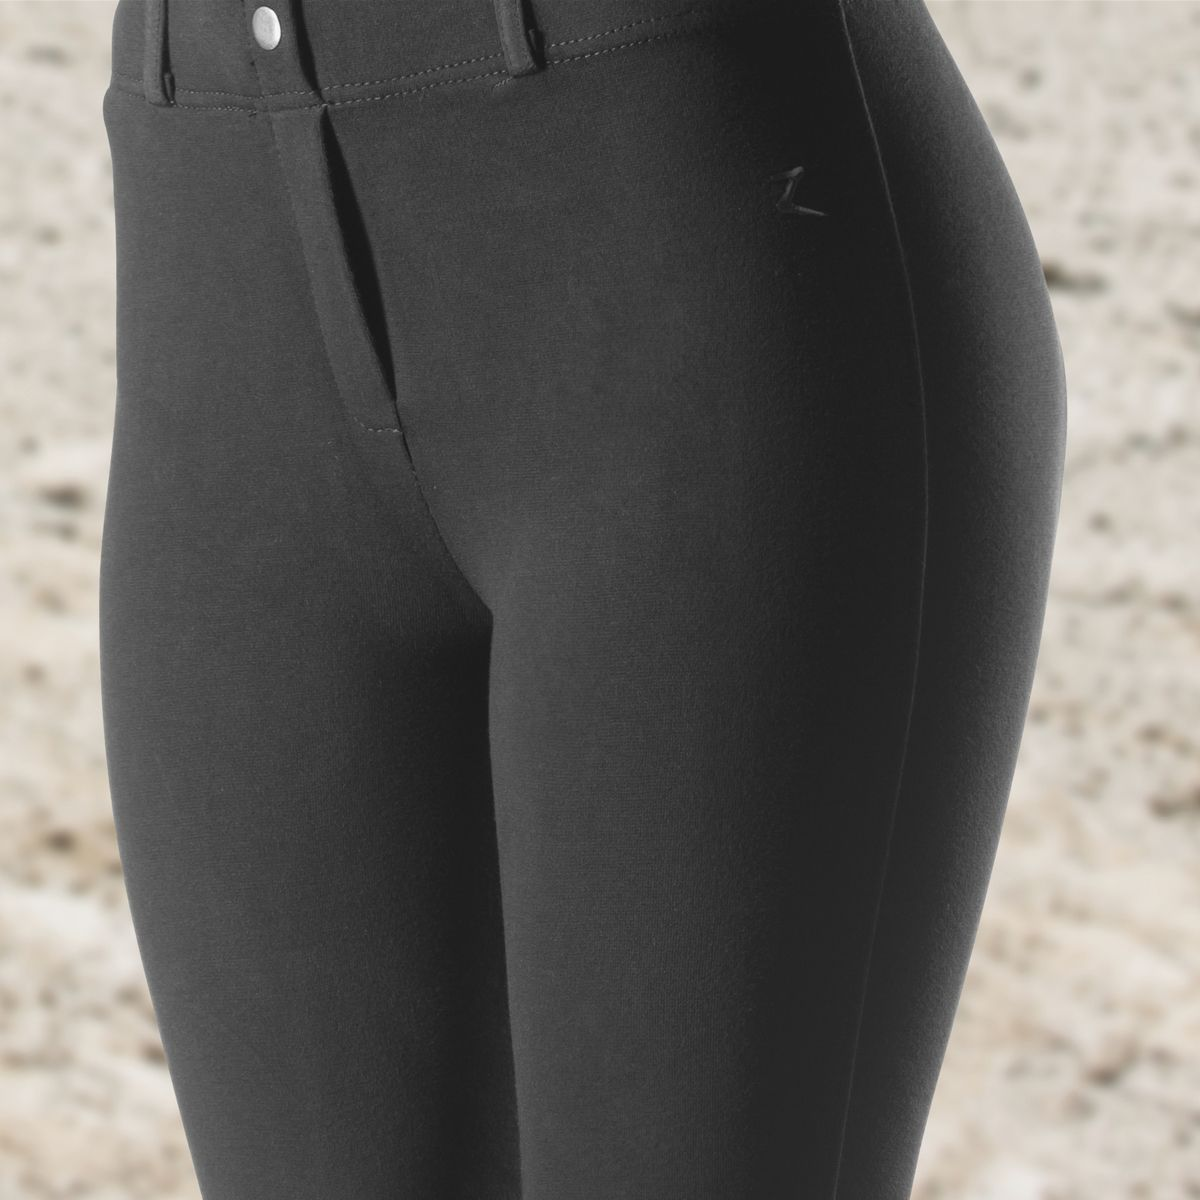 Horze-Ella-Women-039-s-Pull-On-Leather-Knee-Patch-Riding-Breeches-Knitted-Fabric thumbnail 7